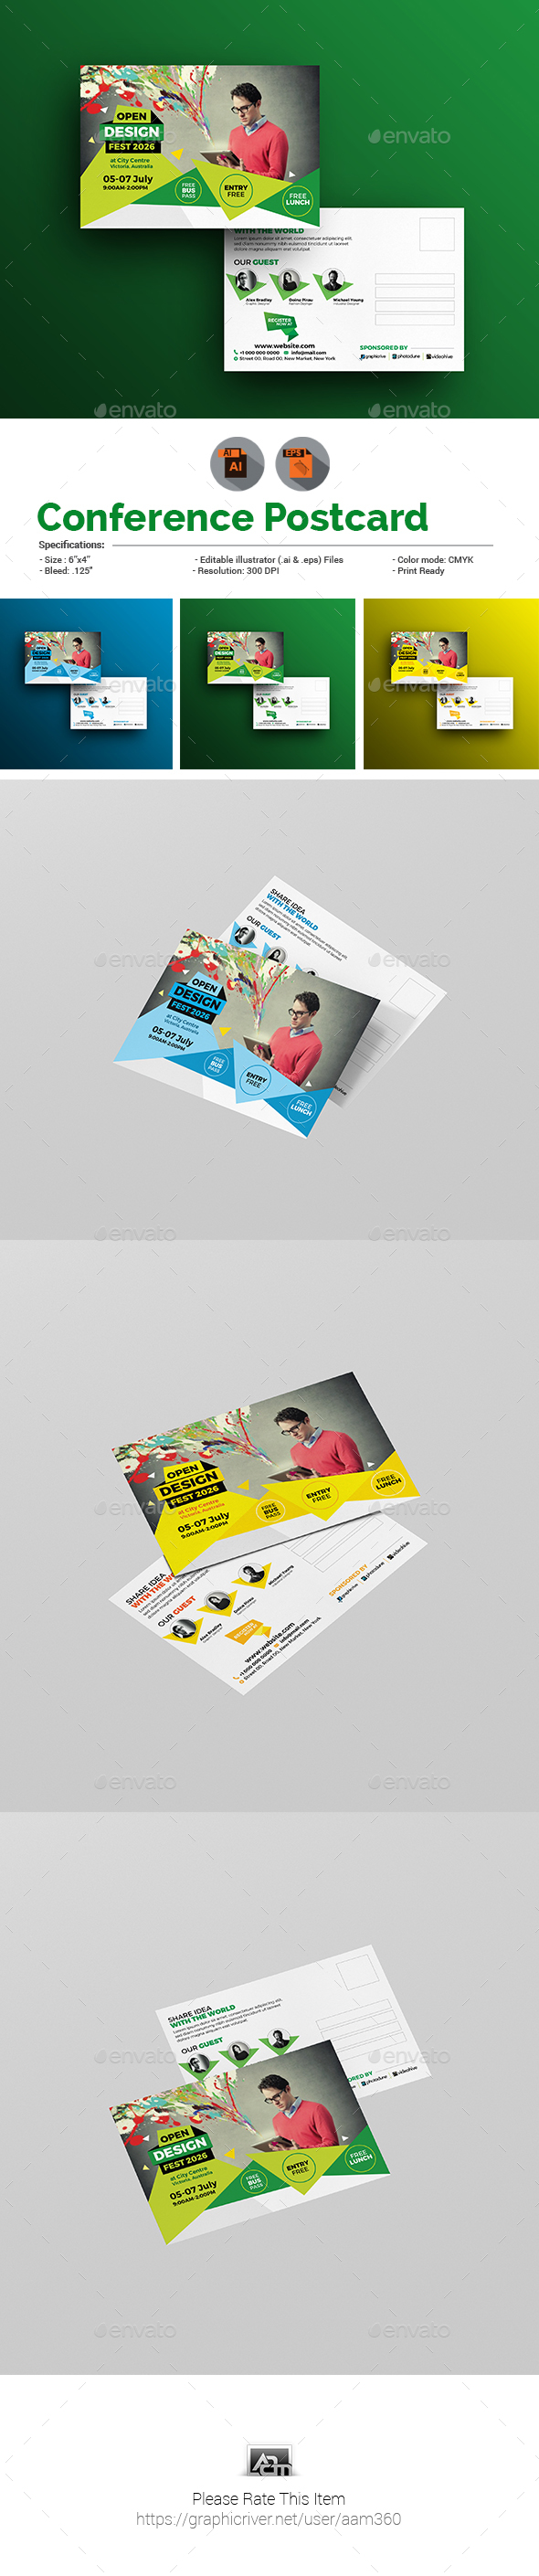 Conference/Event Postcard Template - Cards & Invites Print Templates